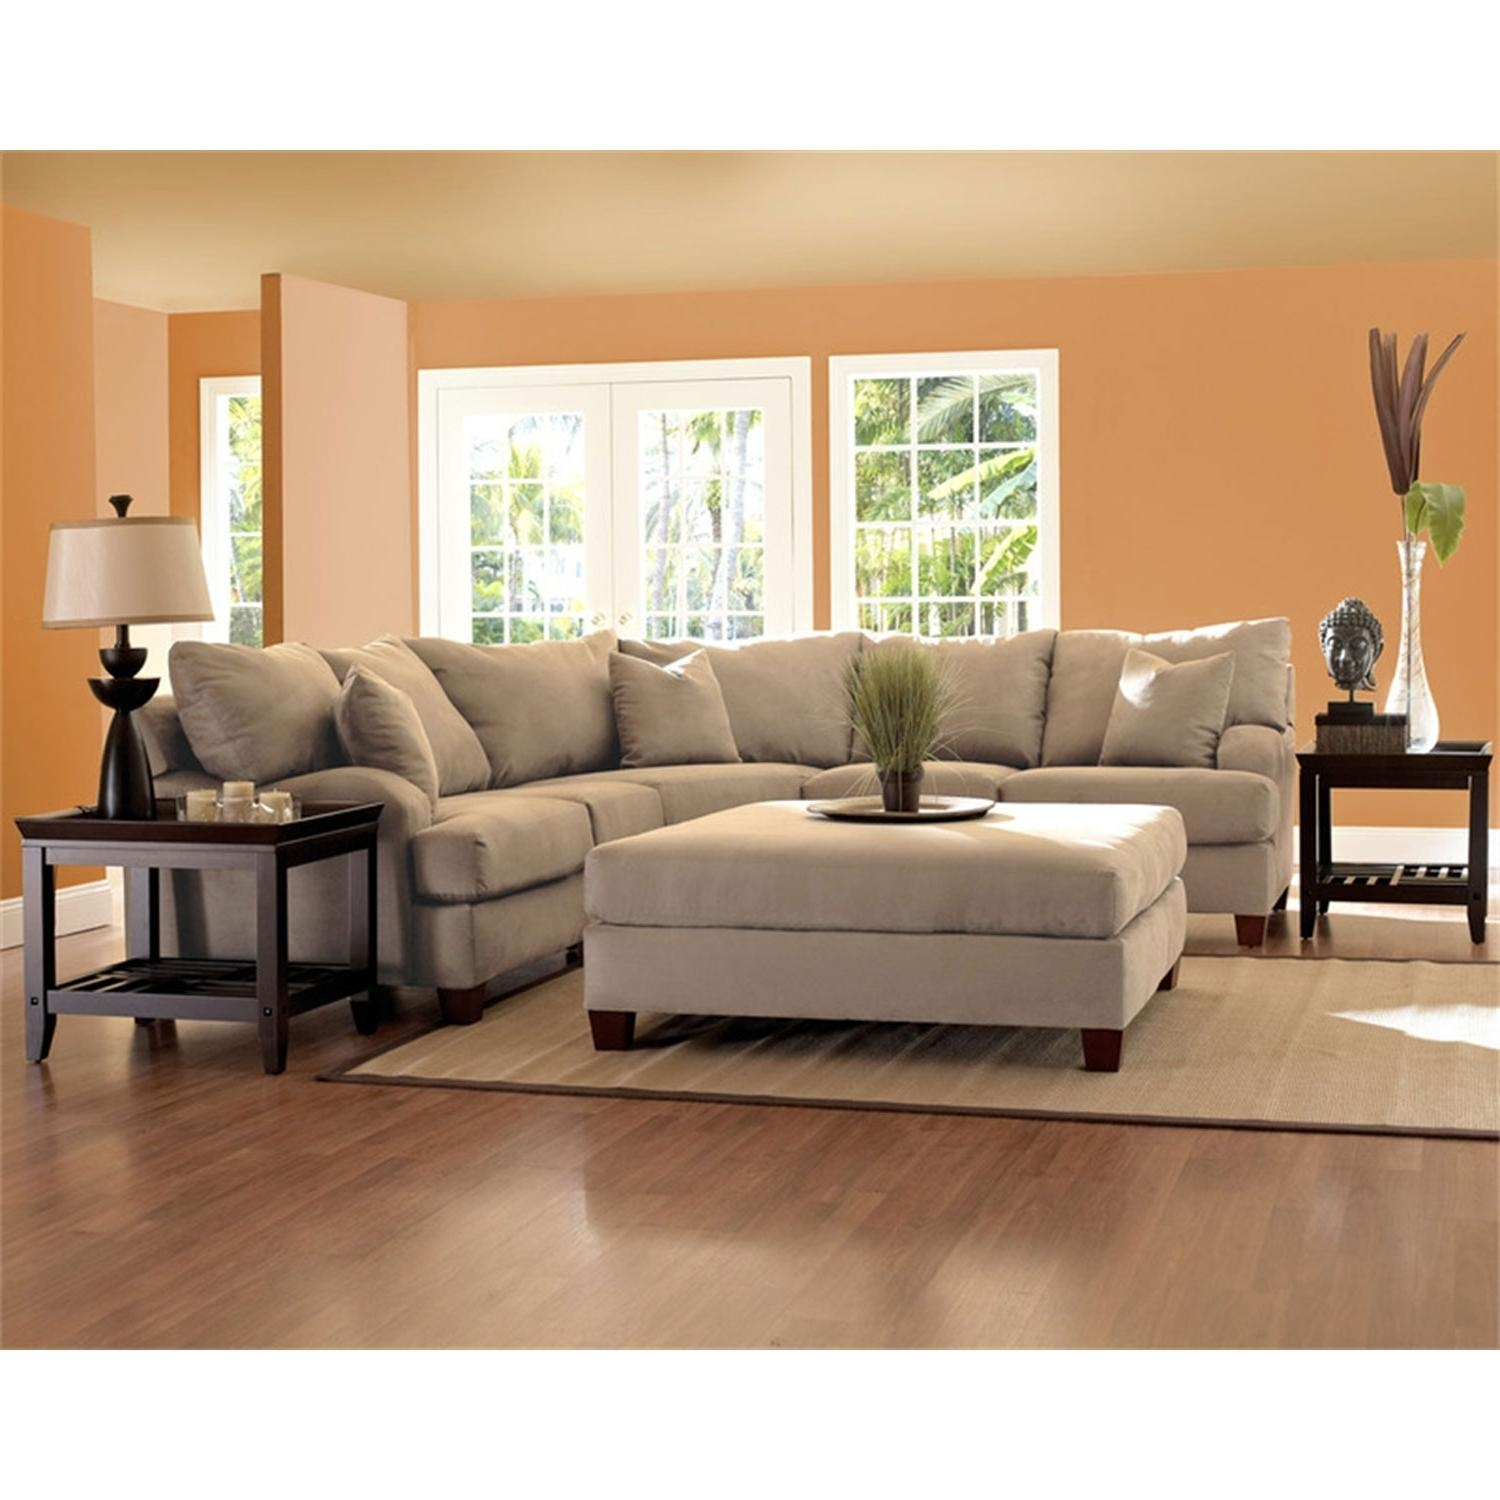 Living Room Furniture Sofas Couches Hom Furniture Camel Colored In Camel Colored Sectional Sofa (View 11 of 15)